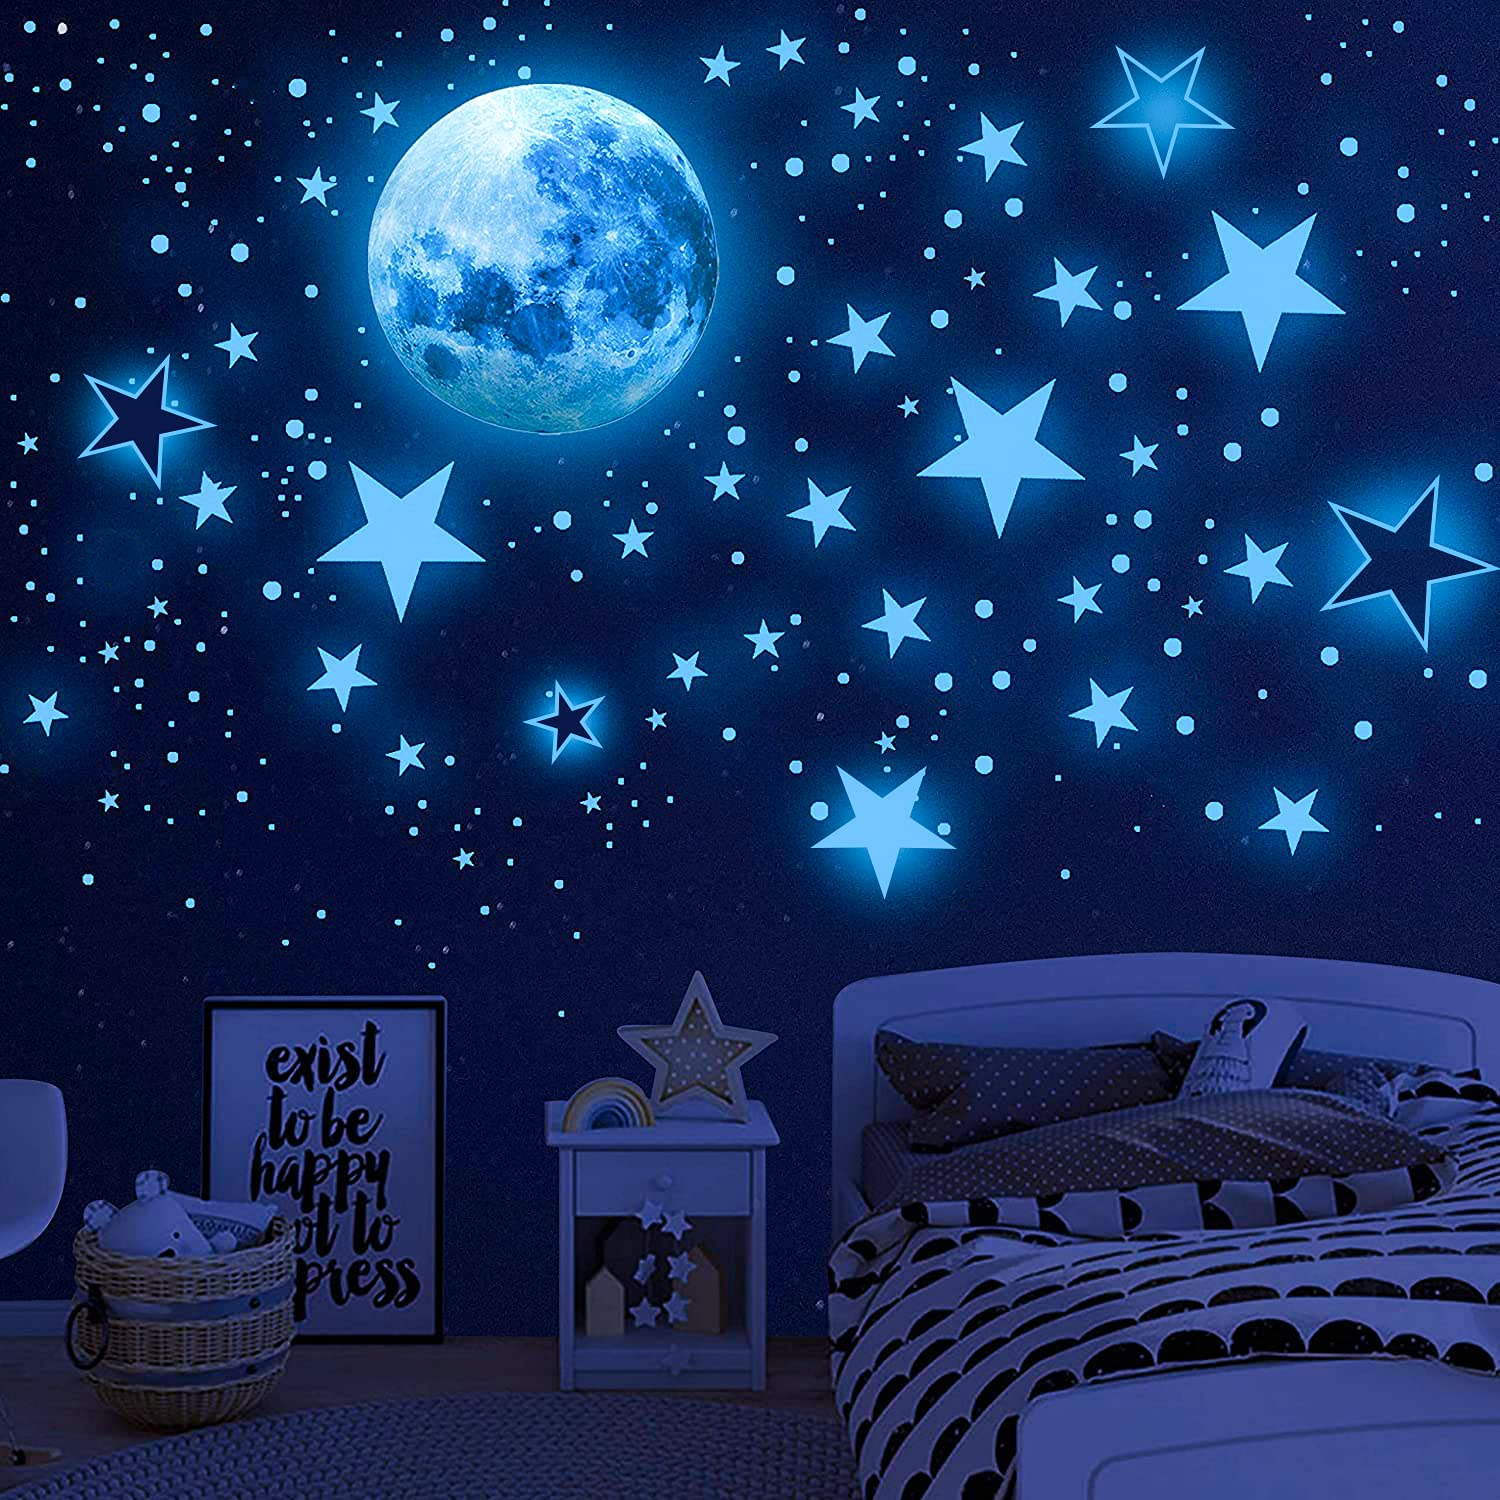 Airsnigi Glow in The Dark Stars for Ceiling,1120PCS Adhesive Wall Stickers,Including Glow Stars and The Moon,Glowing Stars for Ceiling and Wall Decals,Perfect for Kids Bedroom and Kids Birthday Gift (Blue)